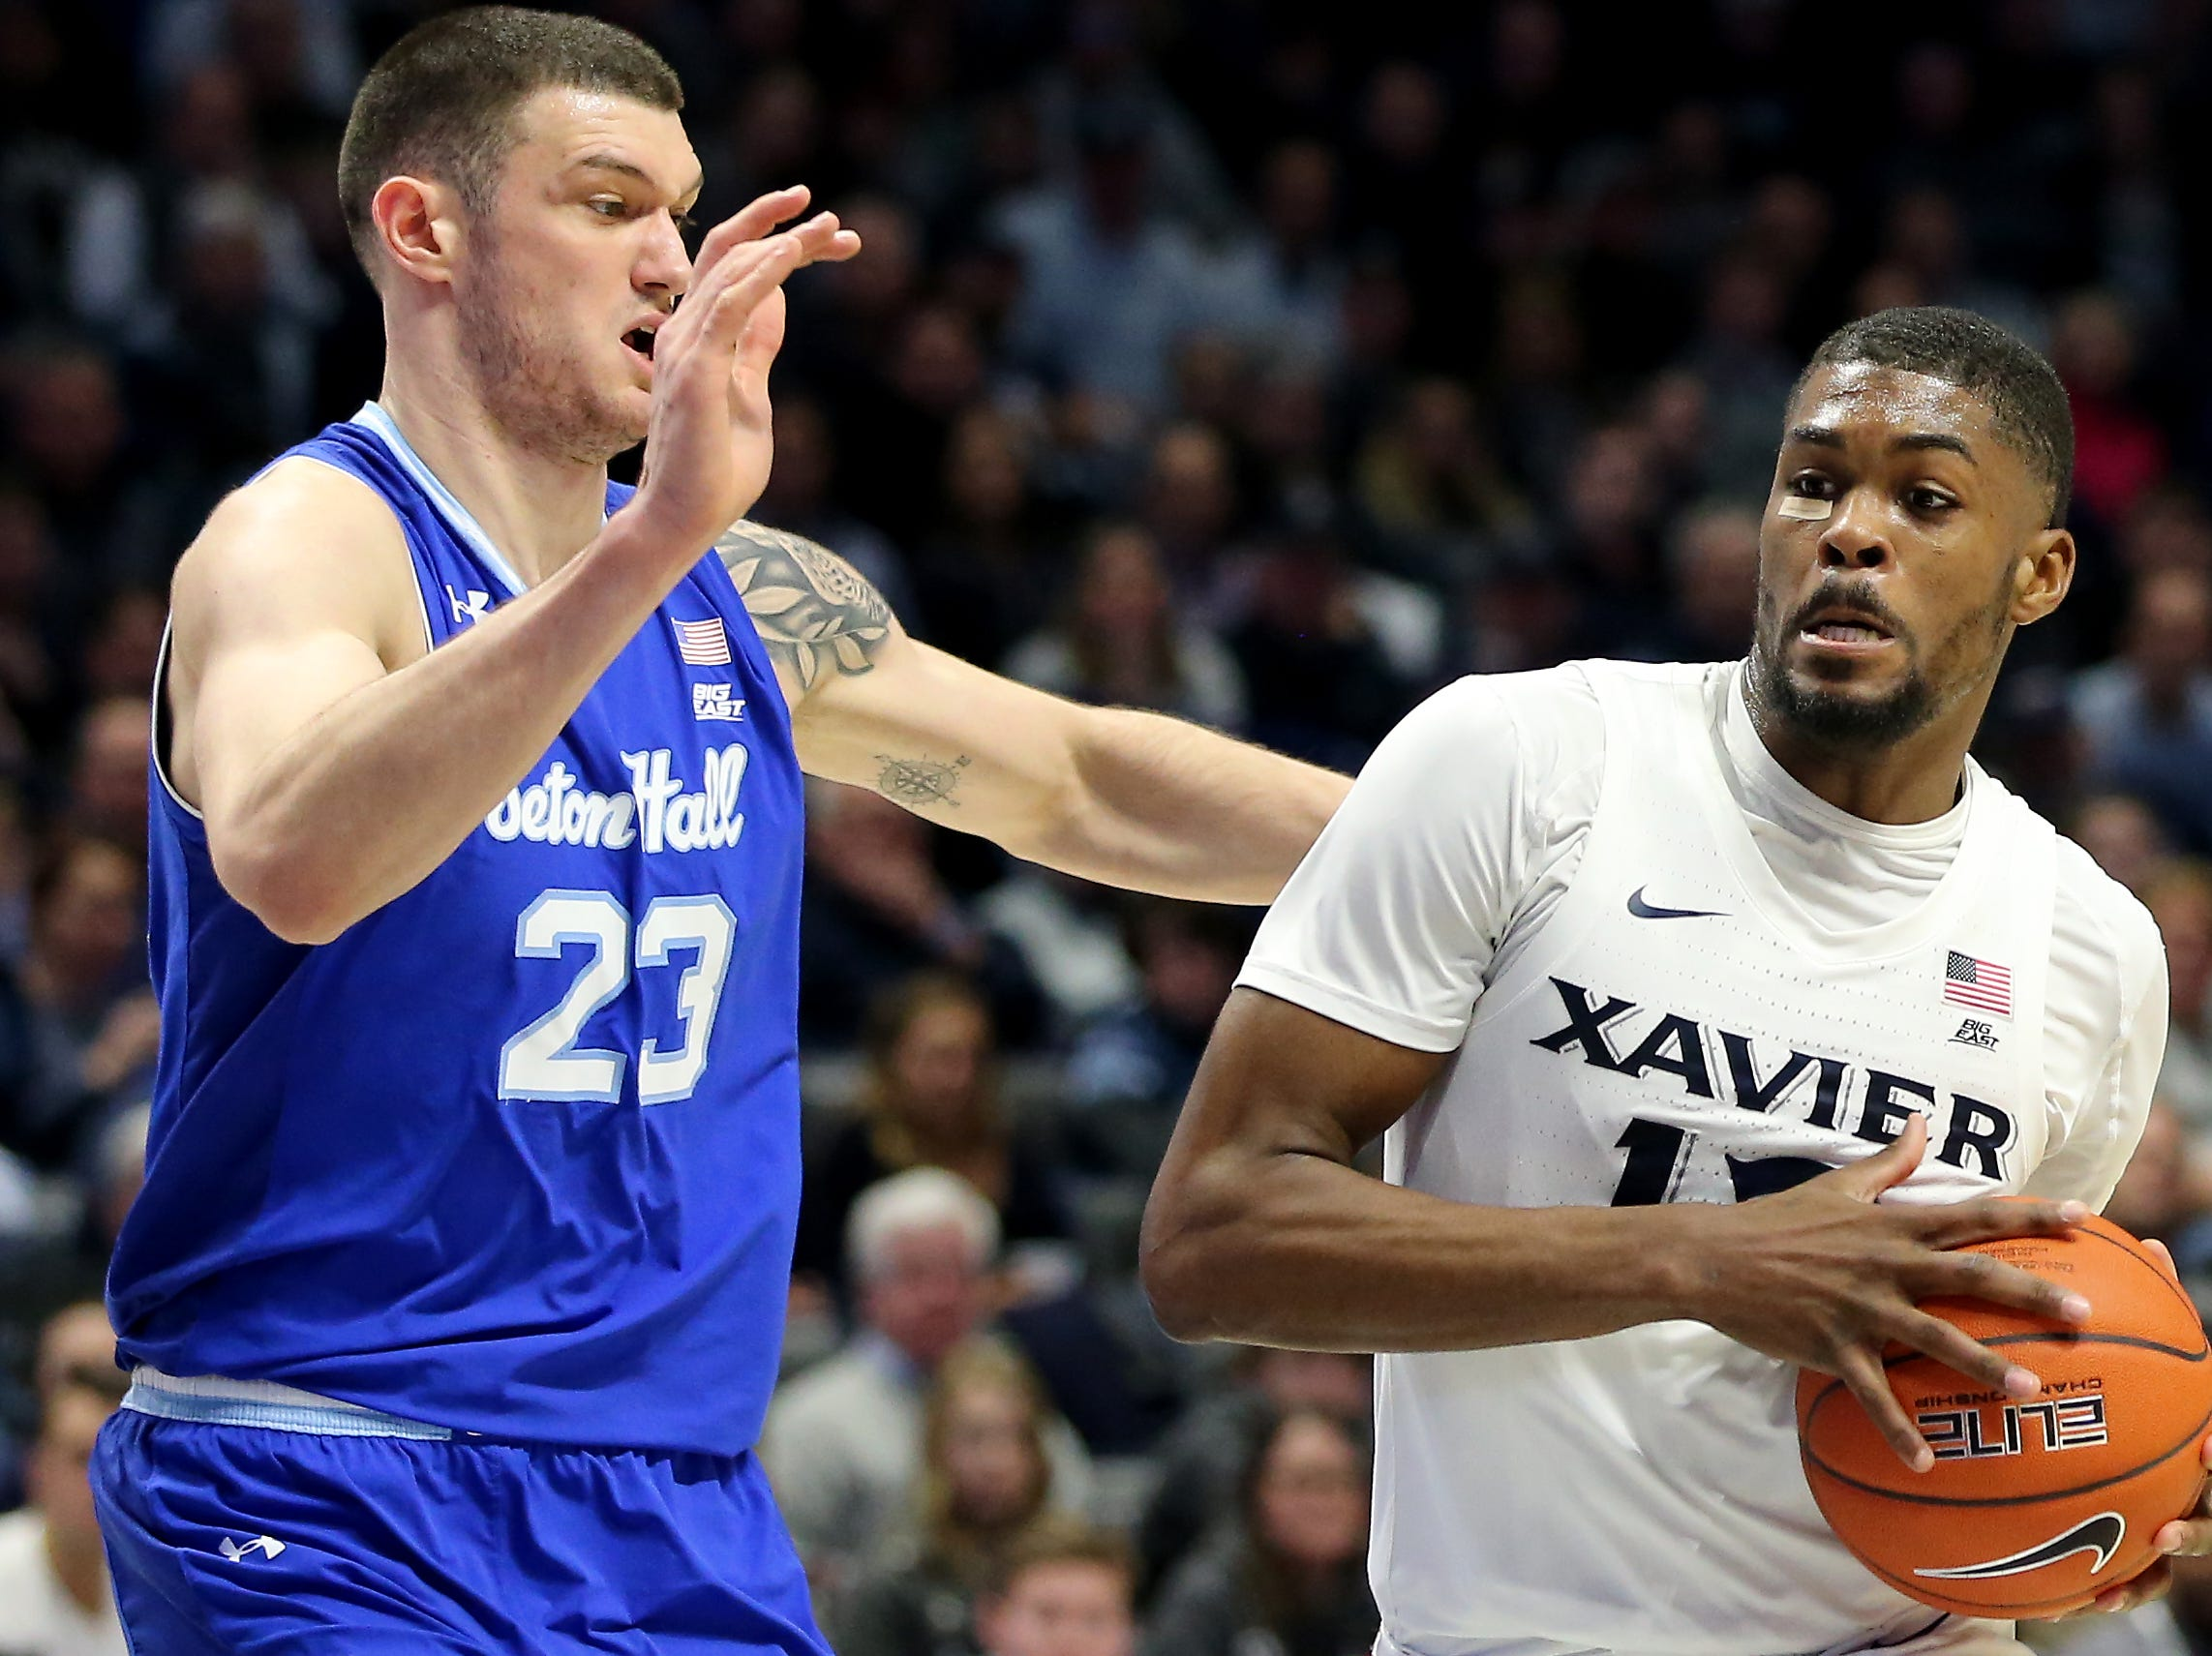 Xavier Musketeers forward Naji Marshall (13) drives to the basket as Seton Hall Pirates forward Sandro Mamukelashvili (23) defends in the second half of an NCAA college basketball game, Wednesday, Jan. 2, 2019, at the Cintas Center in Cincinnati. Seton Hall won 80-70.